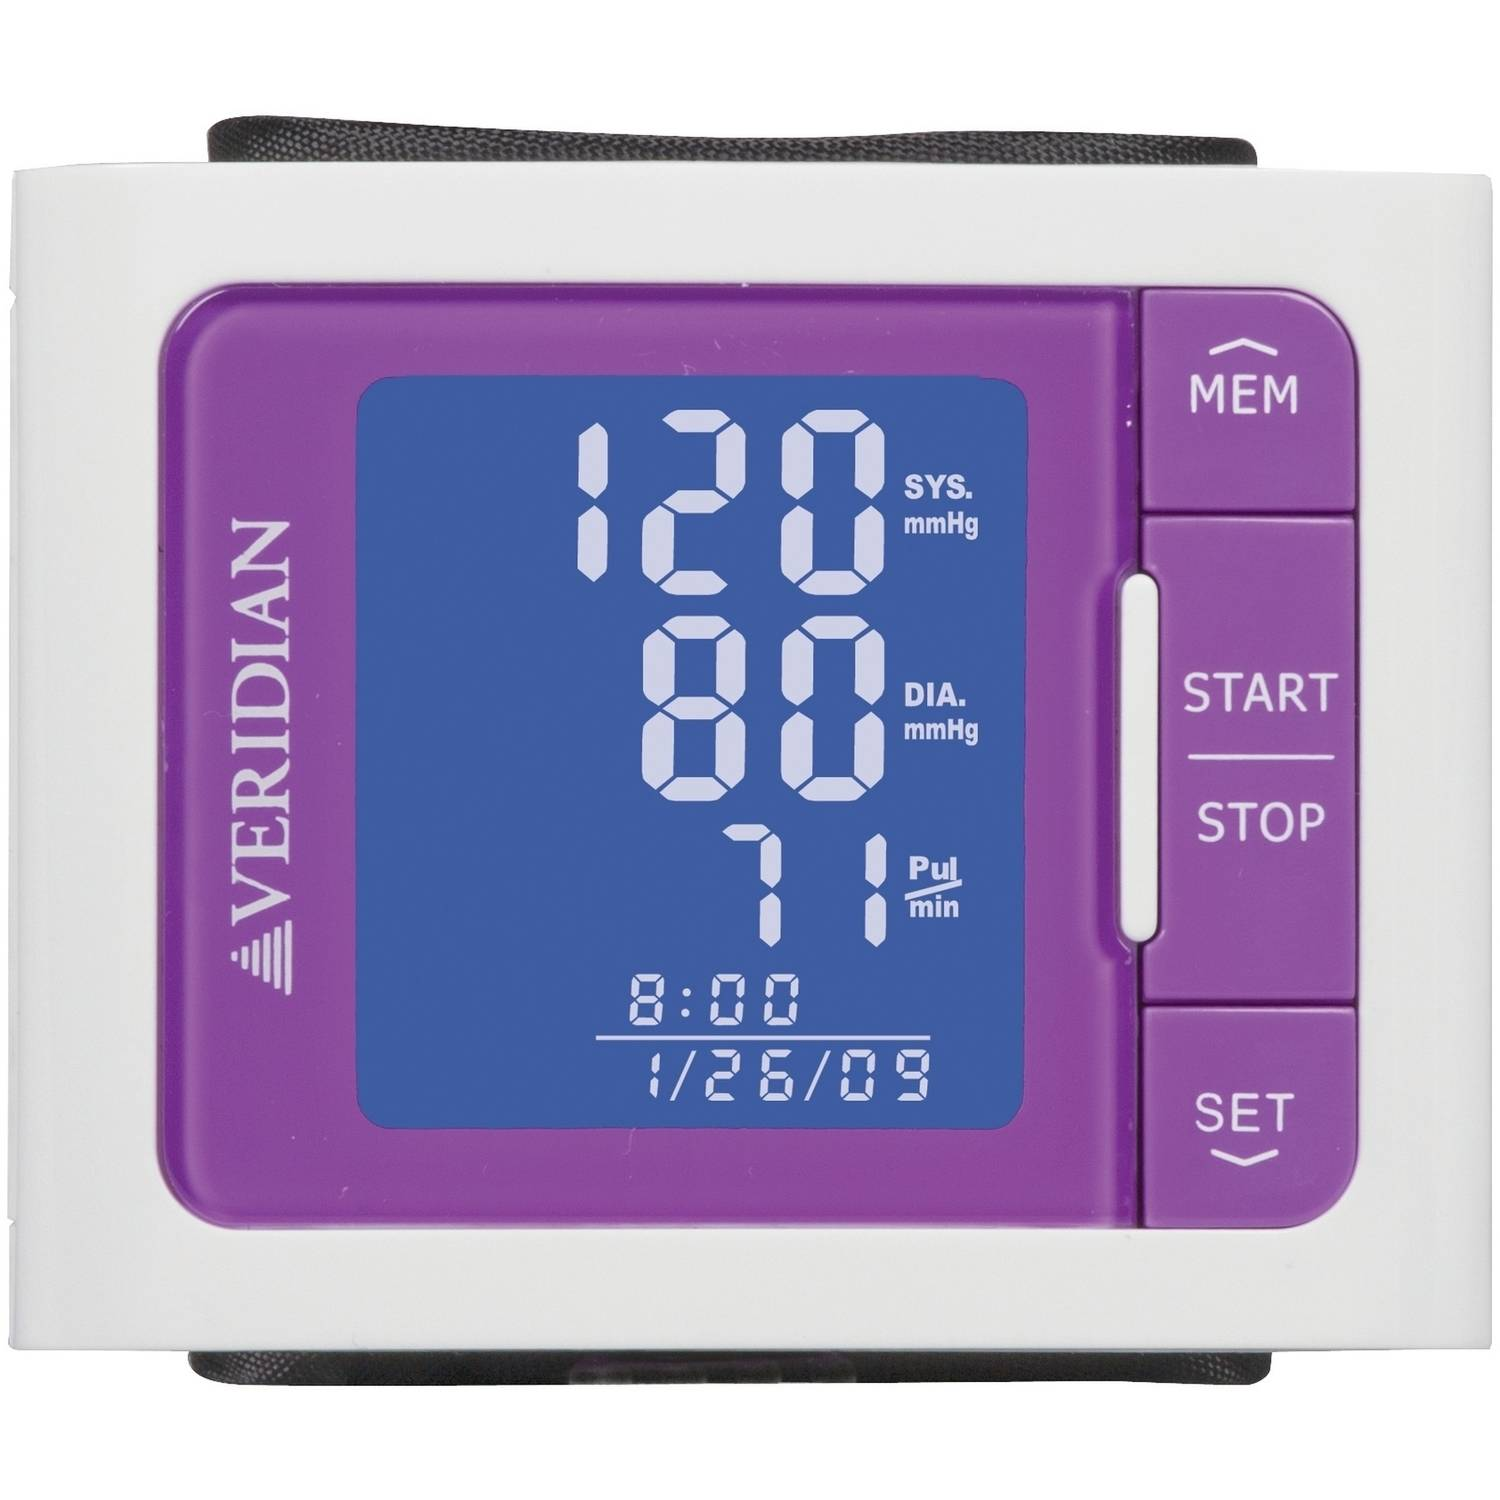 Veridian Vibrant Color Style Blood Pressure Wrist Monitor, Purple